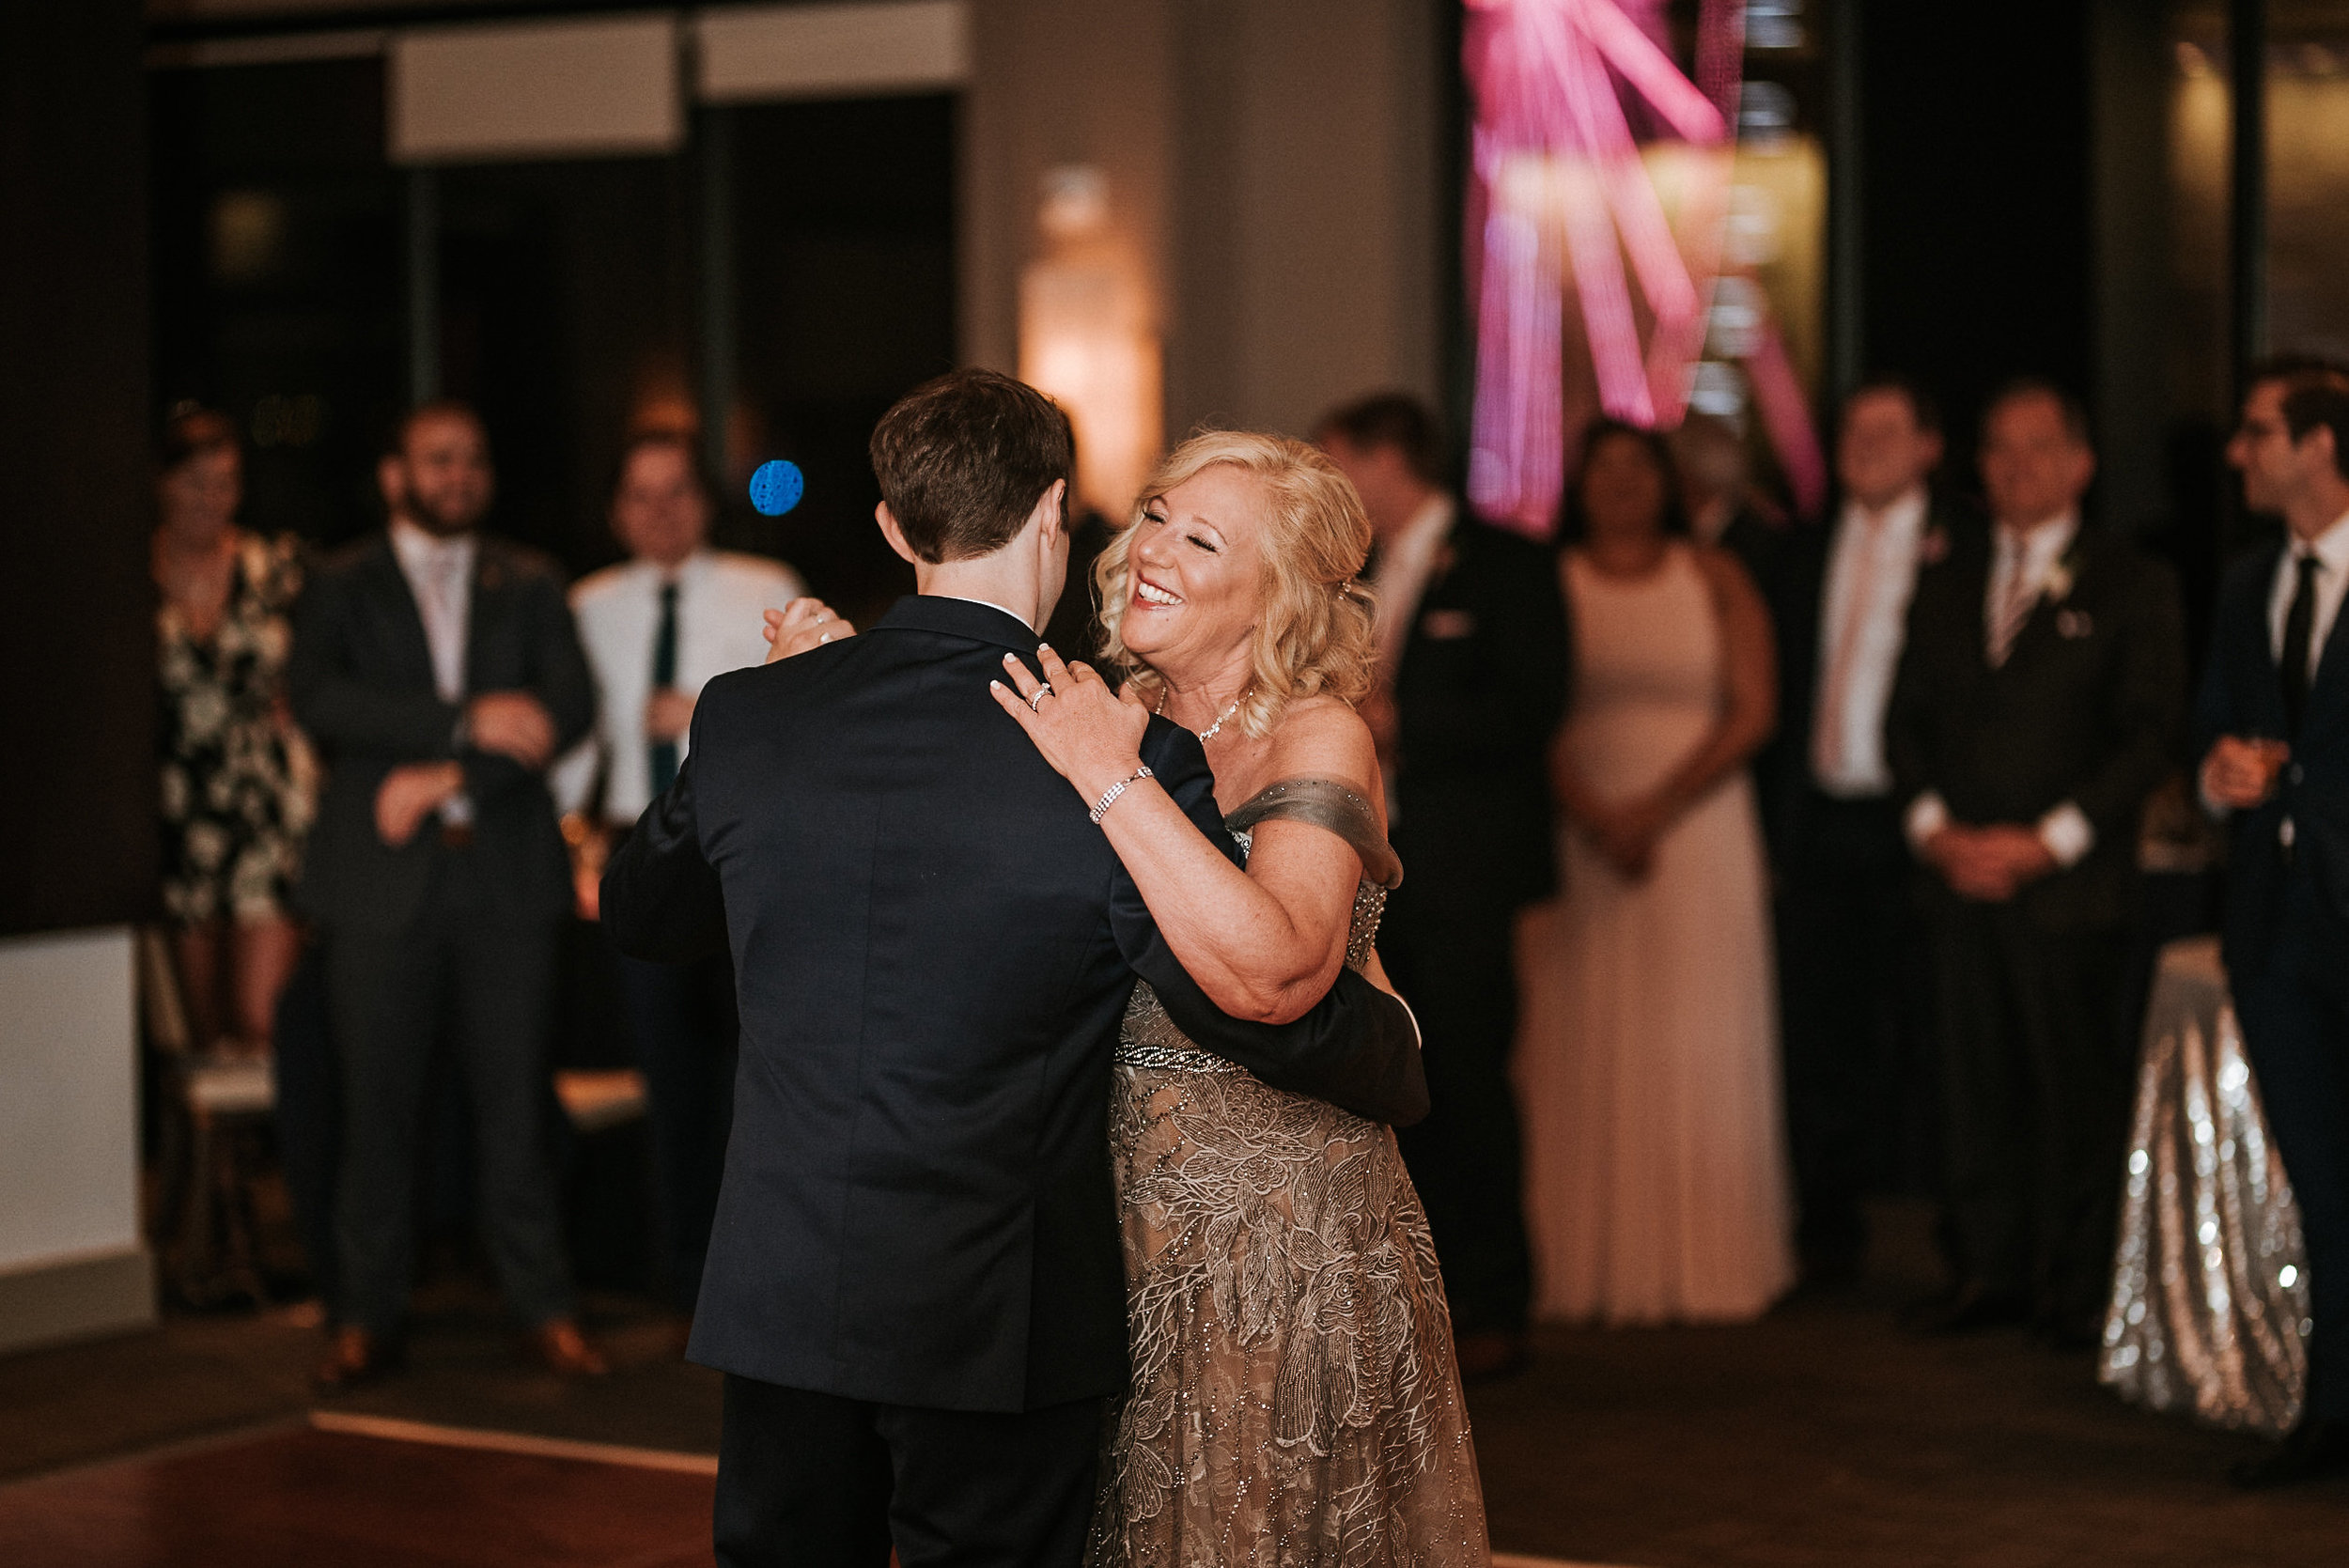 Son and mother dance at reception